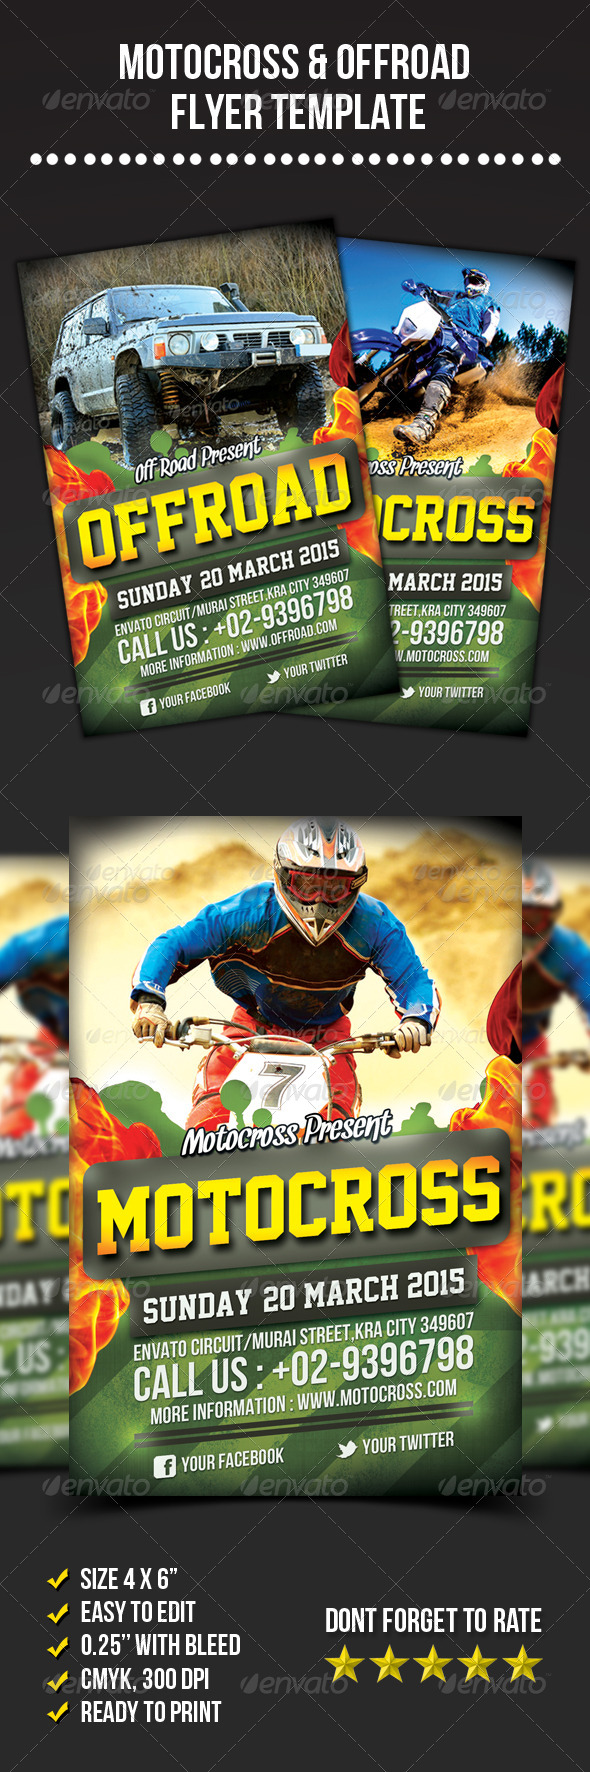 GraphicRiver Motocross & Offroad Flyer 6998473